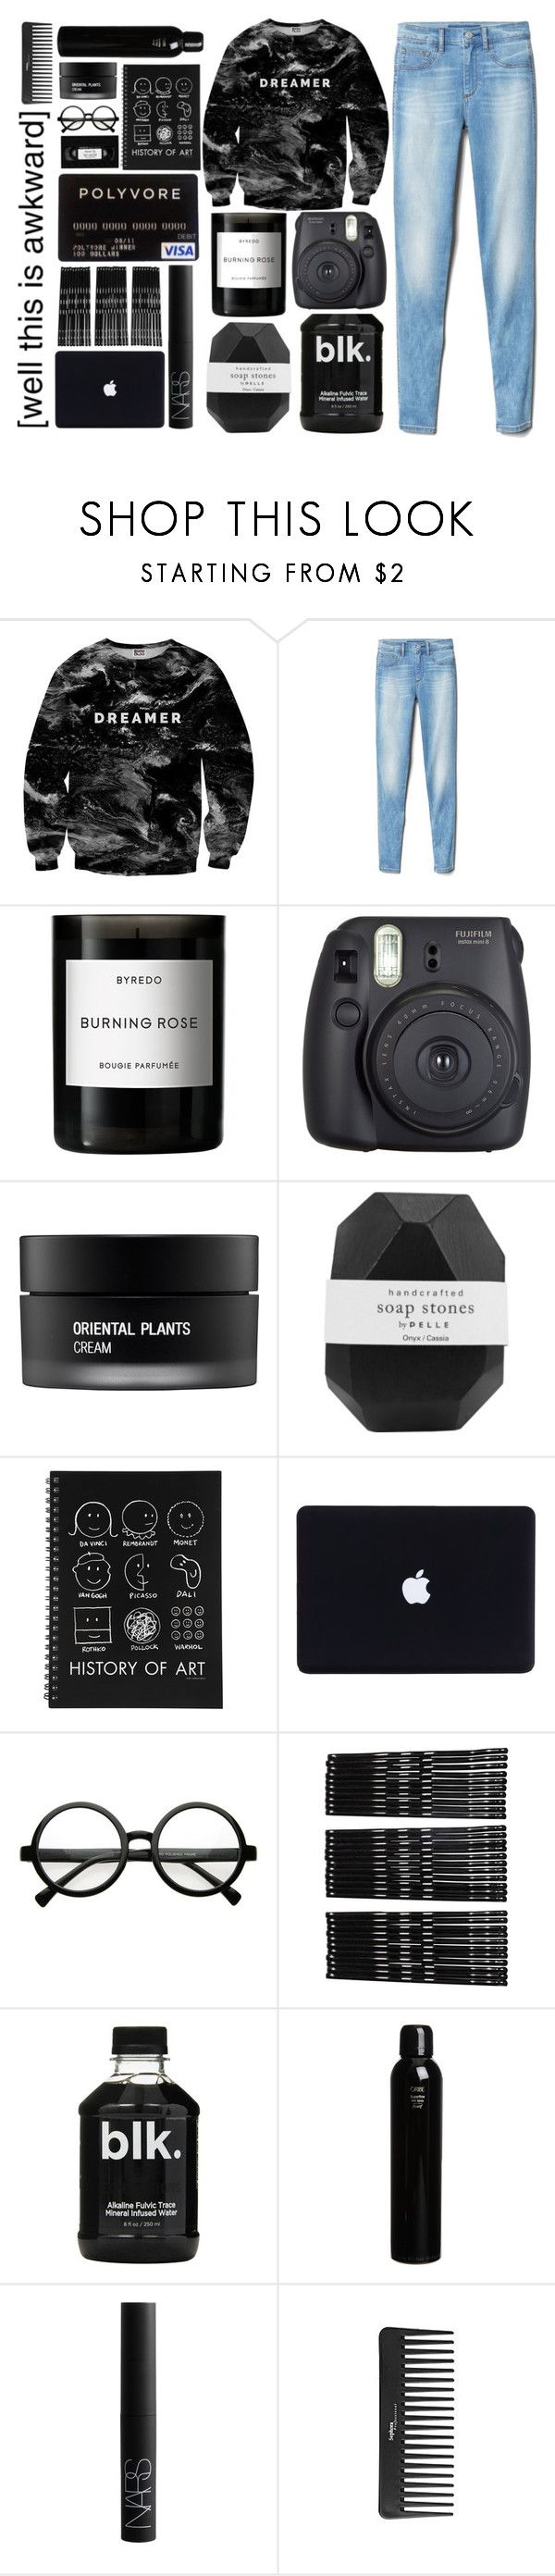 """""""Dreamer"""" by imnotyourstyle ❤ liked on Polyvore featuring Mr. Gugu & Miss Go, Gap, Byredo, Fuji, Koh Gen Do, Pelle, Retrò, Monki, Oribe and NARS Cosmetics"""